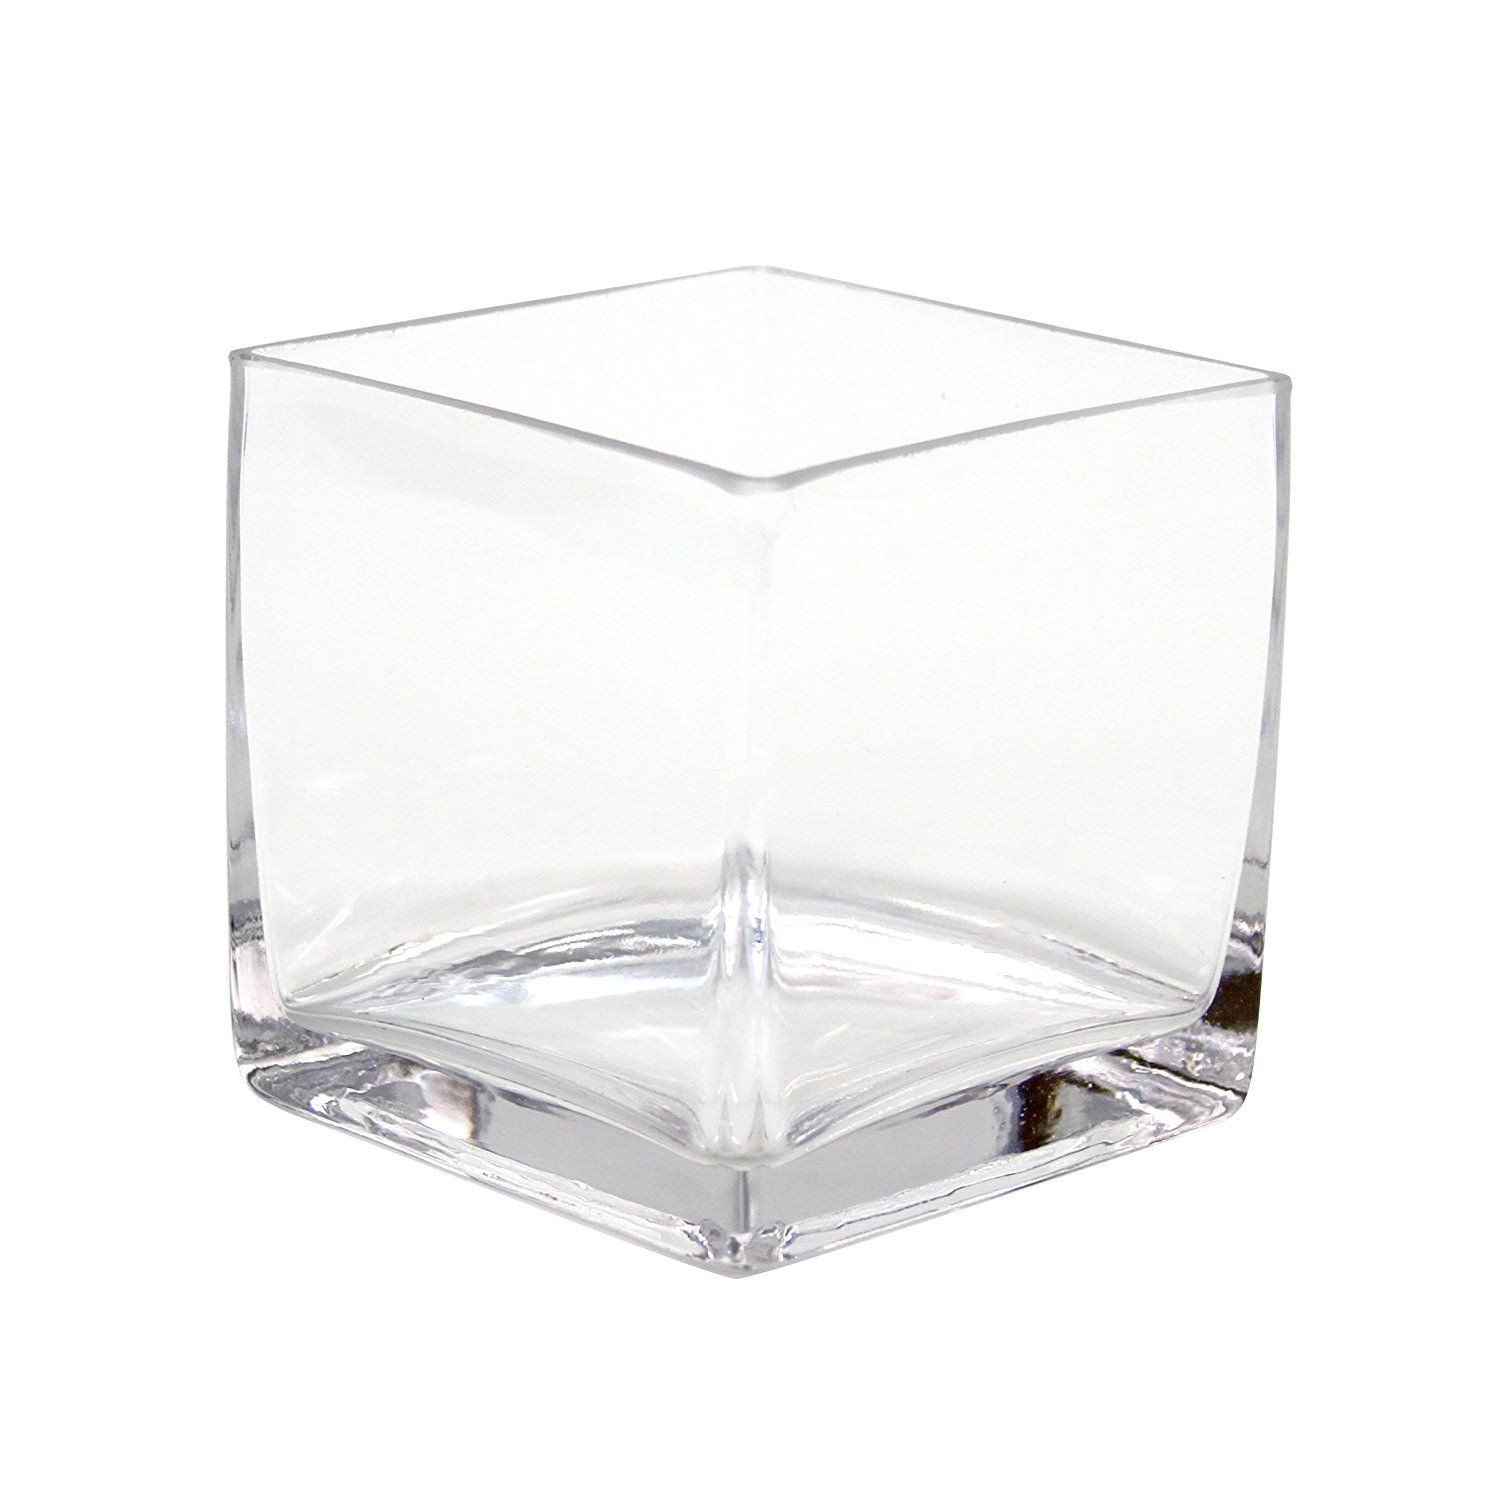 cheap vases in bulk uk of koyal wholesale 404343 12 pack cube square glass vases 4 by 4 by 4 for glass